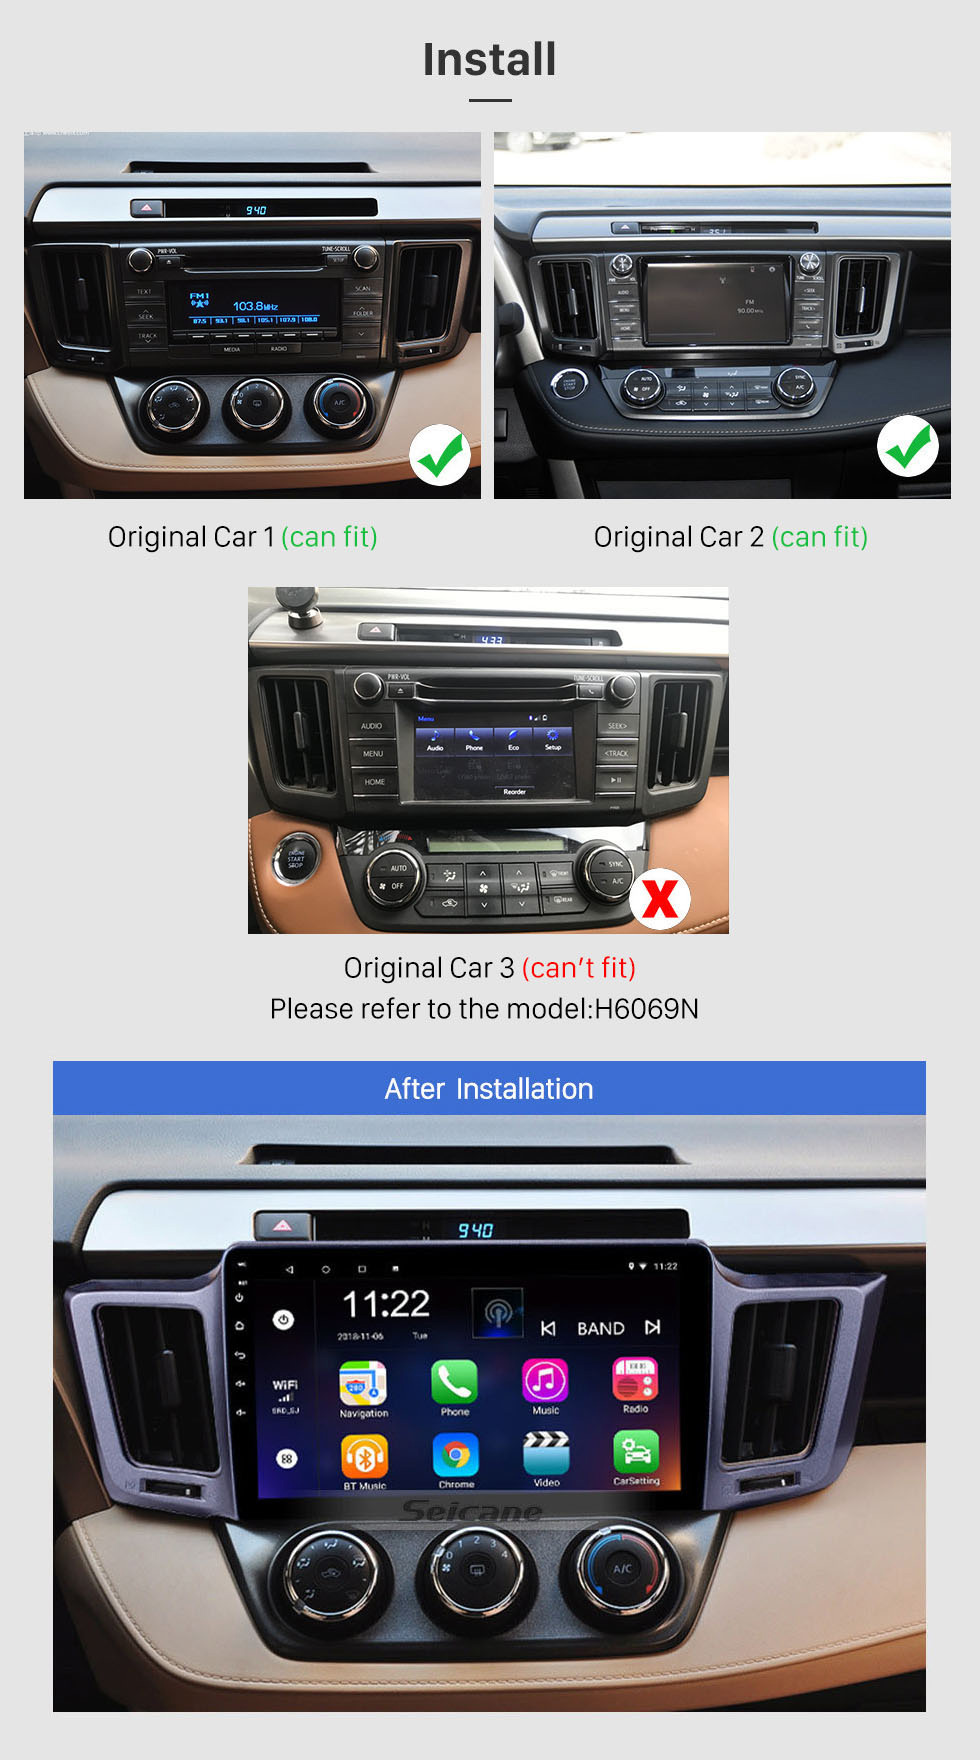 Seicane 2012-2015 Toyota RAV4 10.1 inch Android 10.0 GPS Navigation Radio with Touch Screen WiFi Bluetooth Music USB support OBD2 DVR TPMS